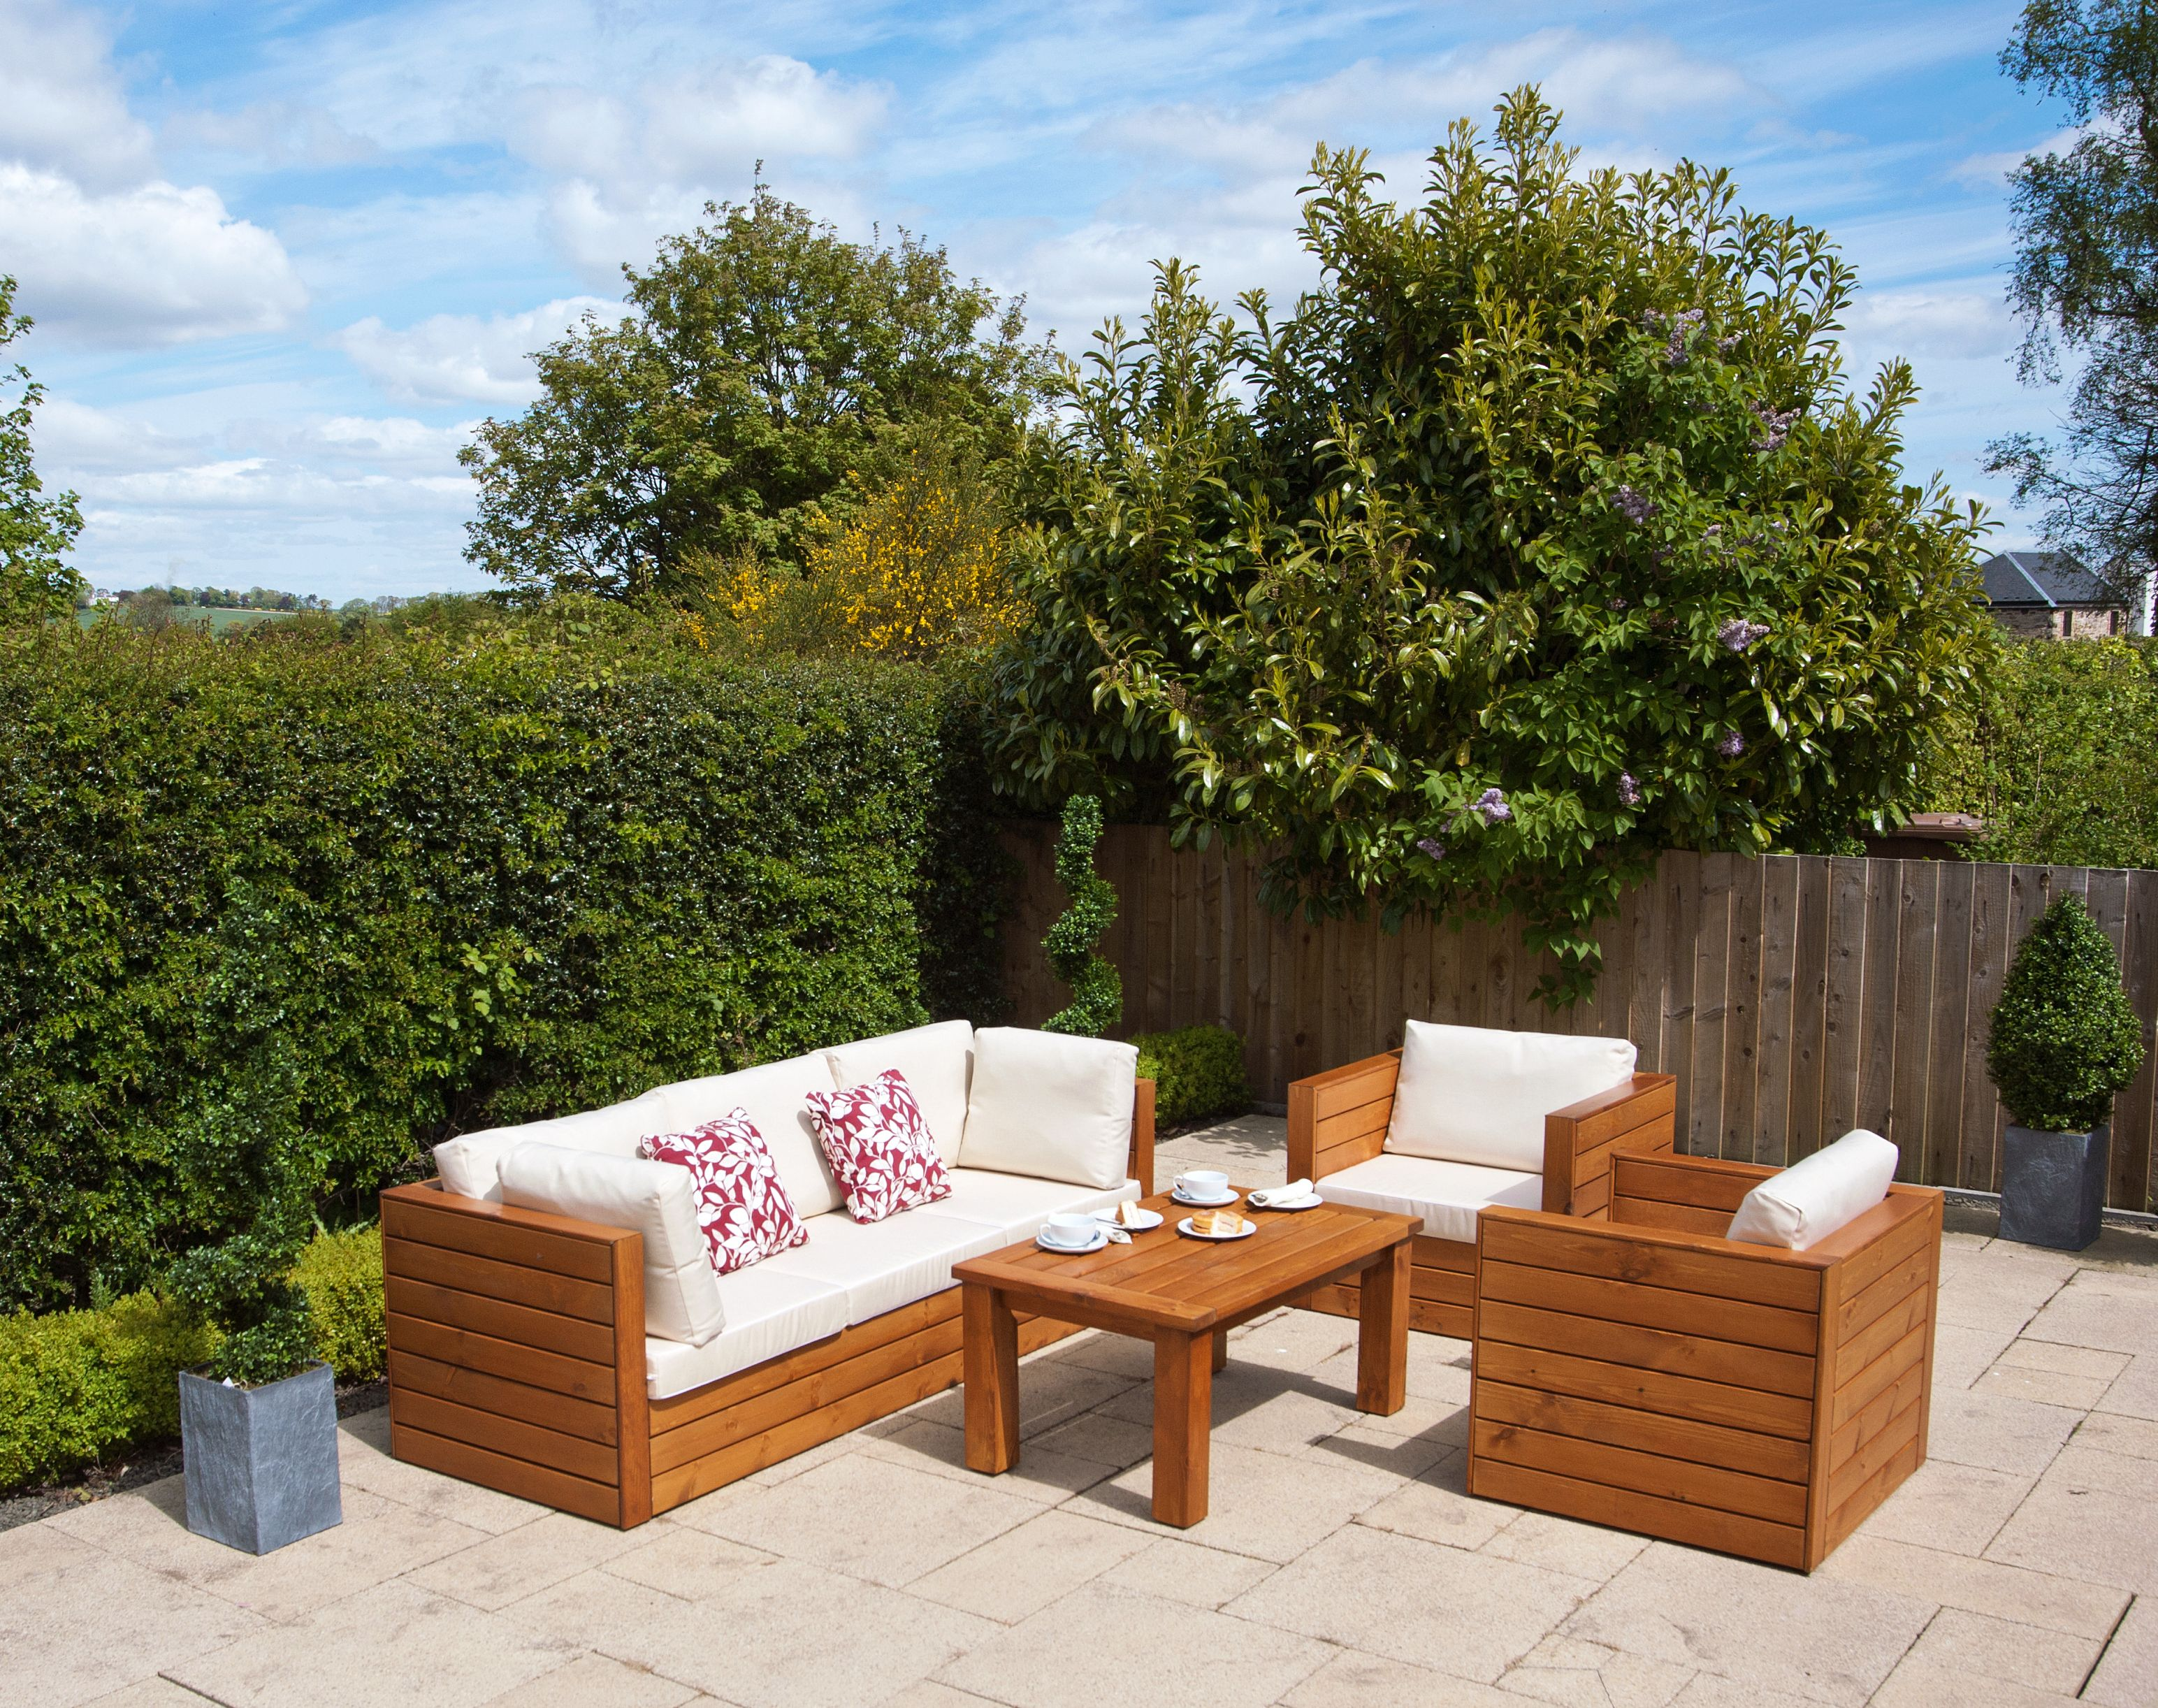 Our gorgeous new Genoa range looks stunning in the sunshine  http   www  greenfingers com product asp dept id 200445 pf id LT4628D   Pinterest    Genoa. Our gorgeous new Genoa range looks stunning in the sunshine  http